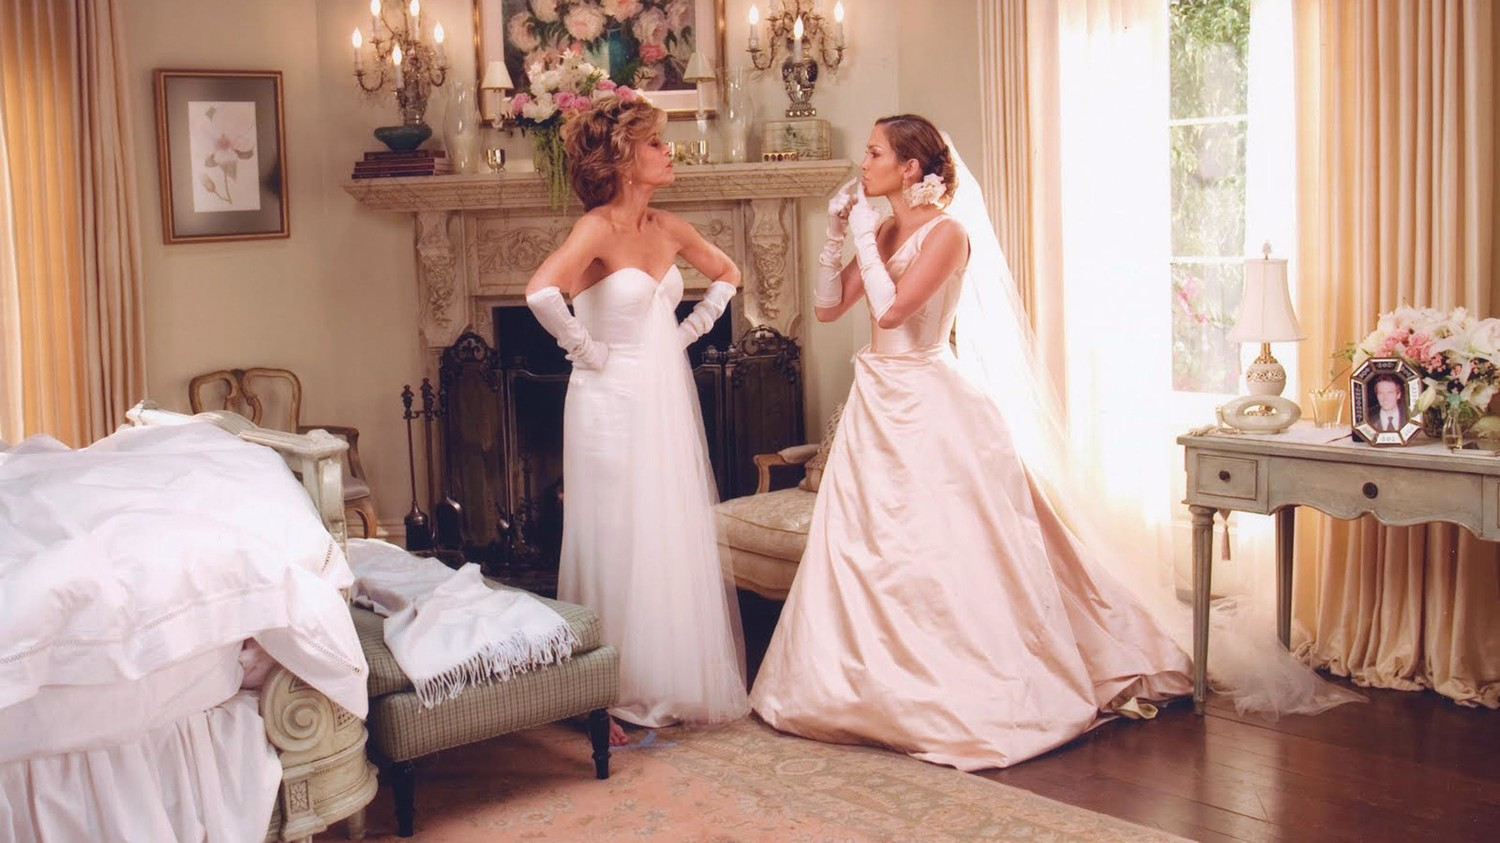 How to Deal with a Mother or Mother-in-Law Who's Trying to Outshine the Bride